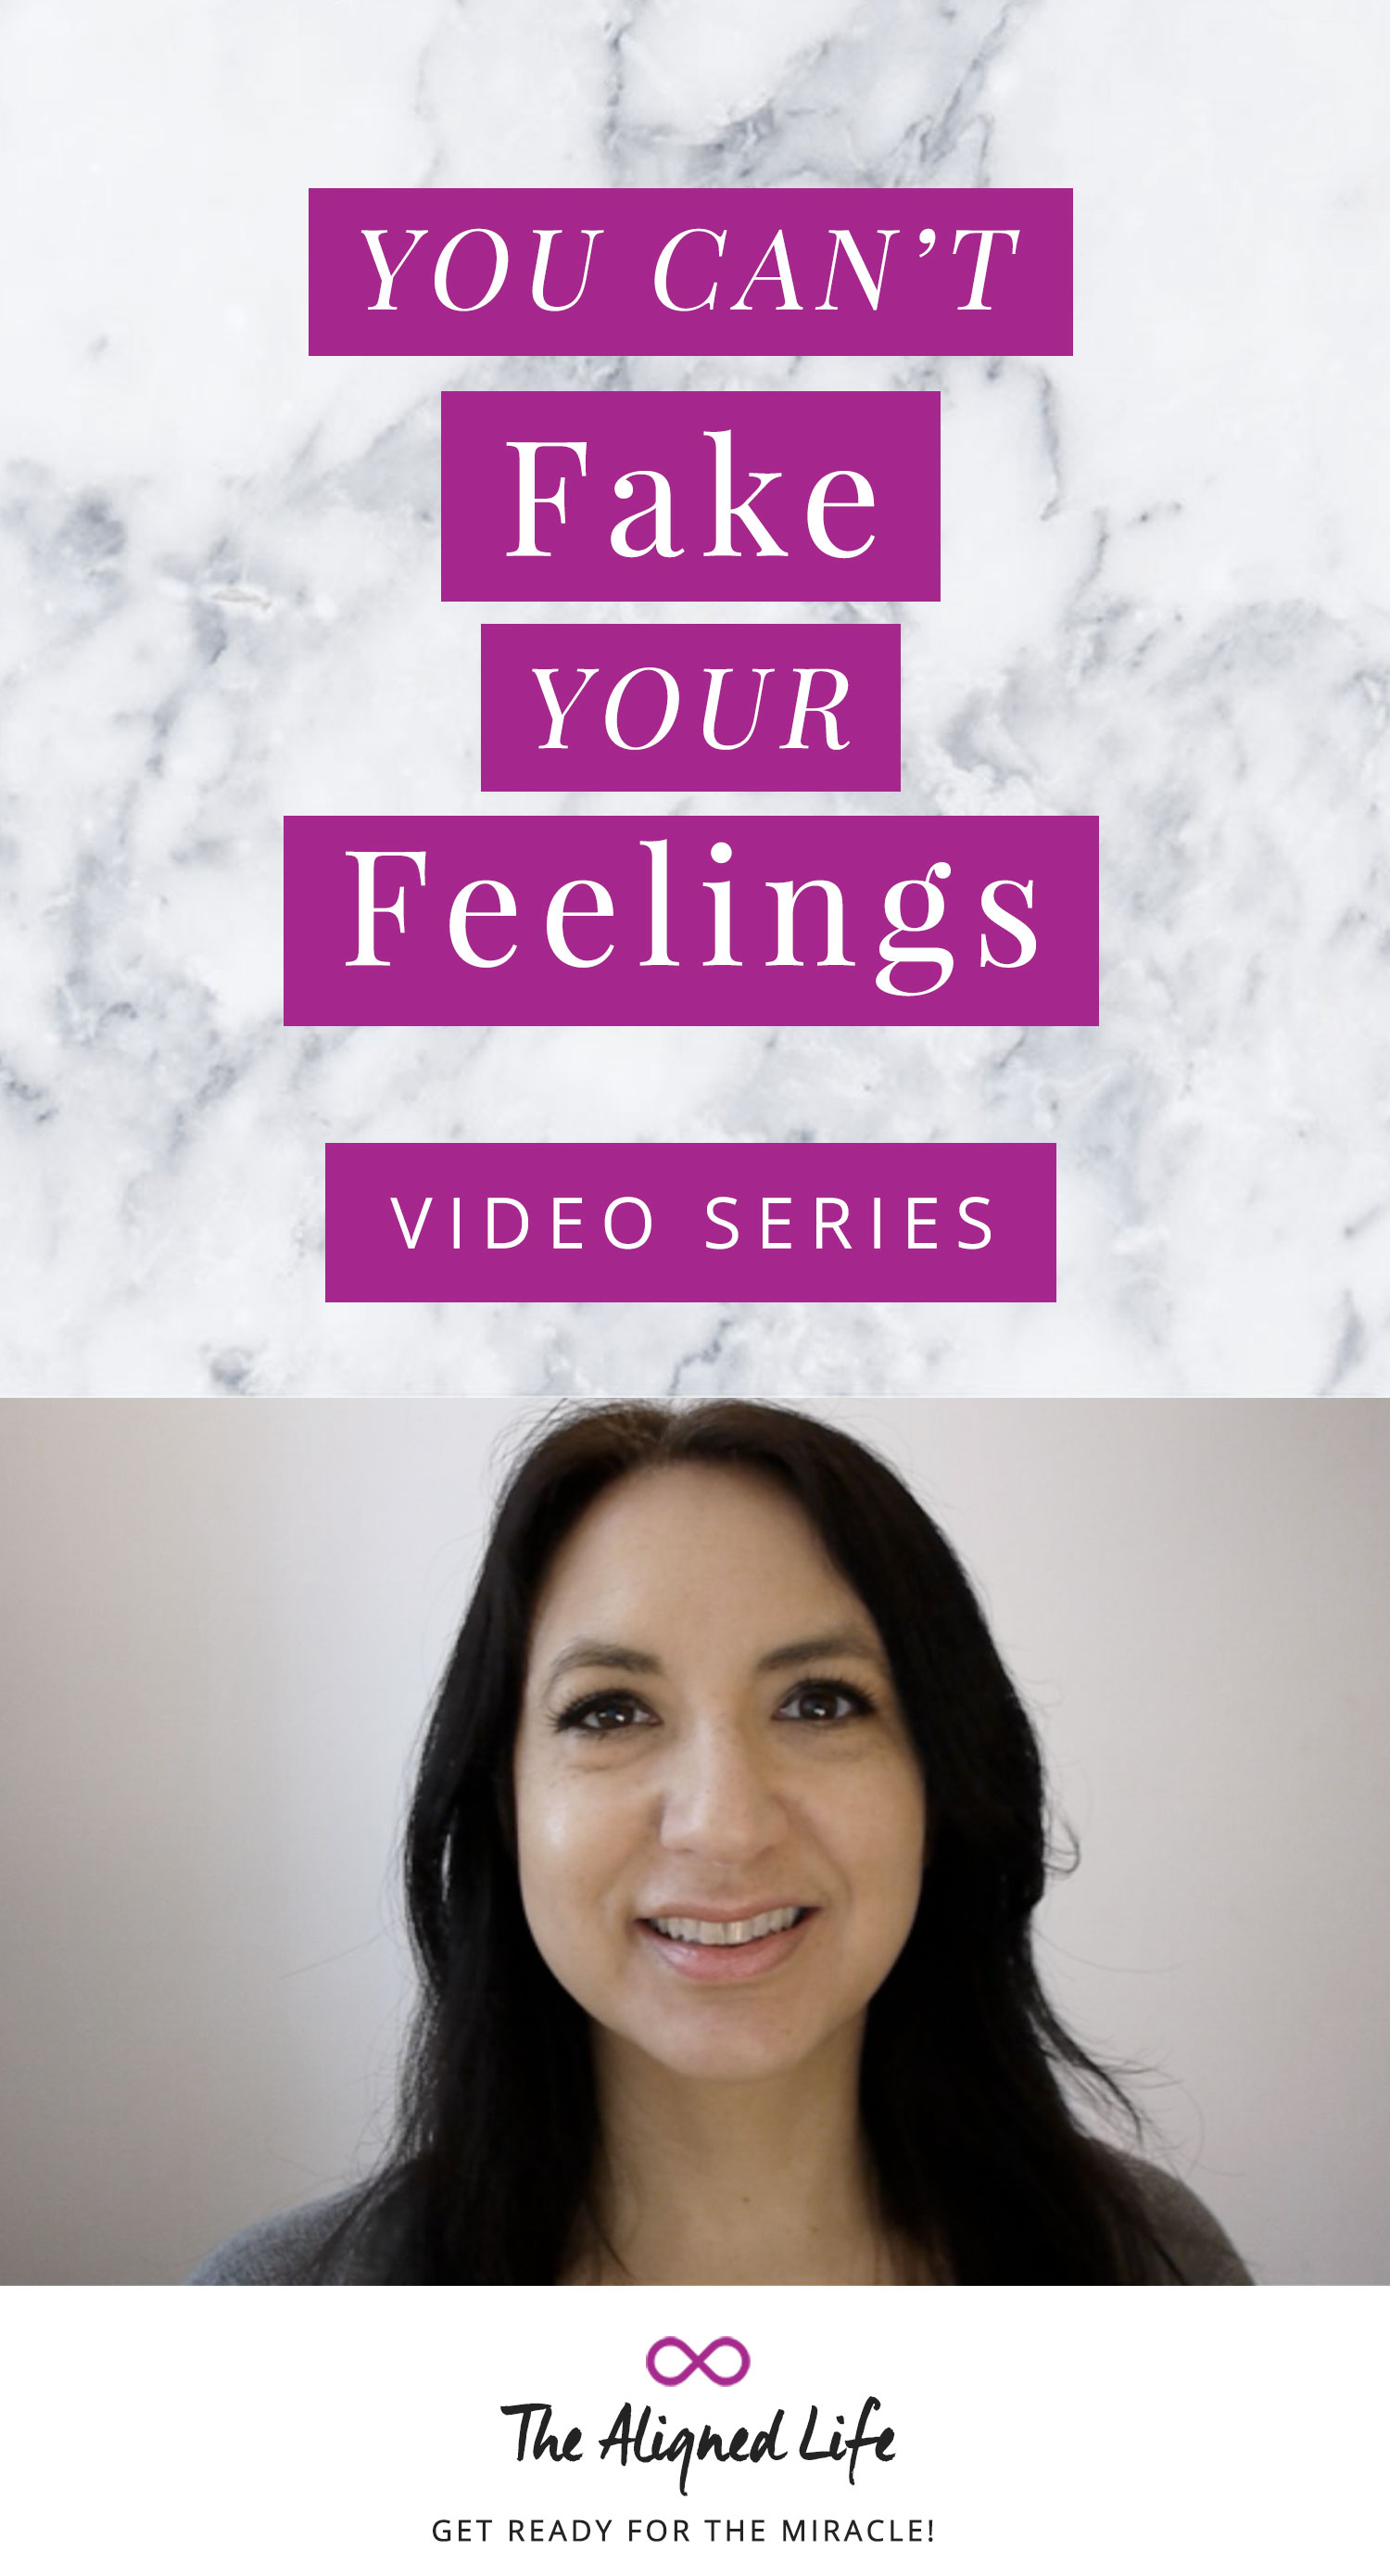 Video: You Can't Fake Your Feelings